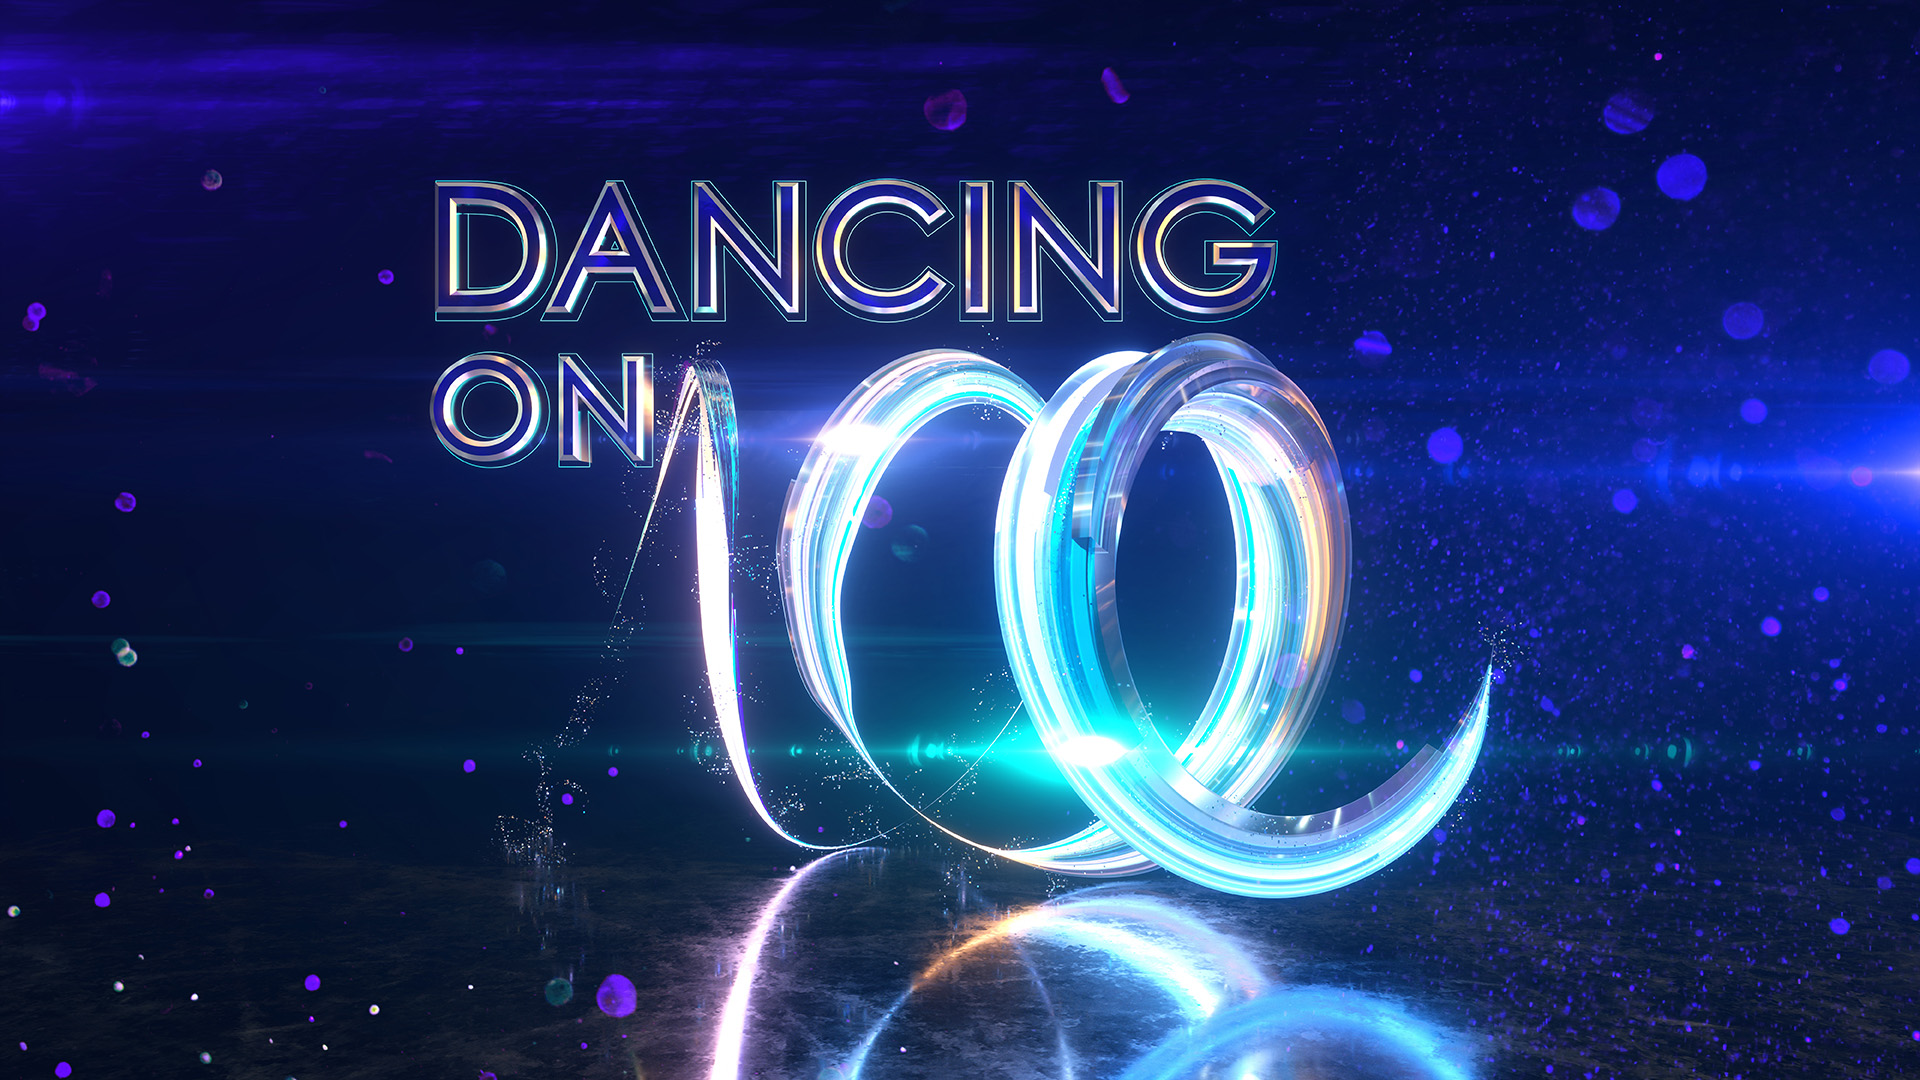 Dancing on ice tour 2019 celebrity skaters